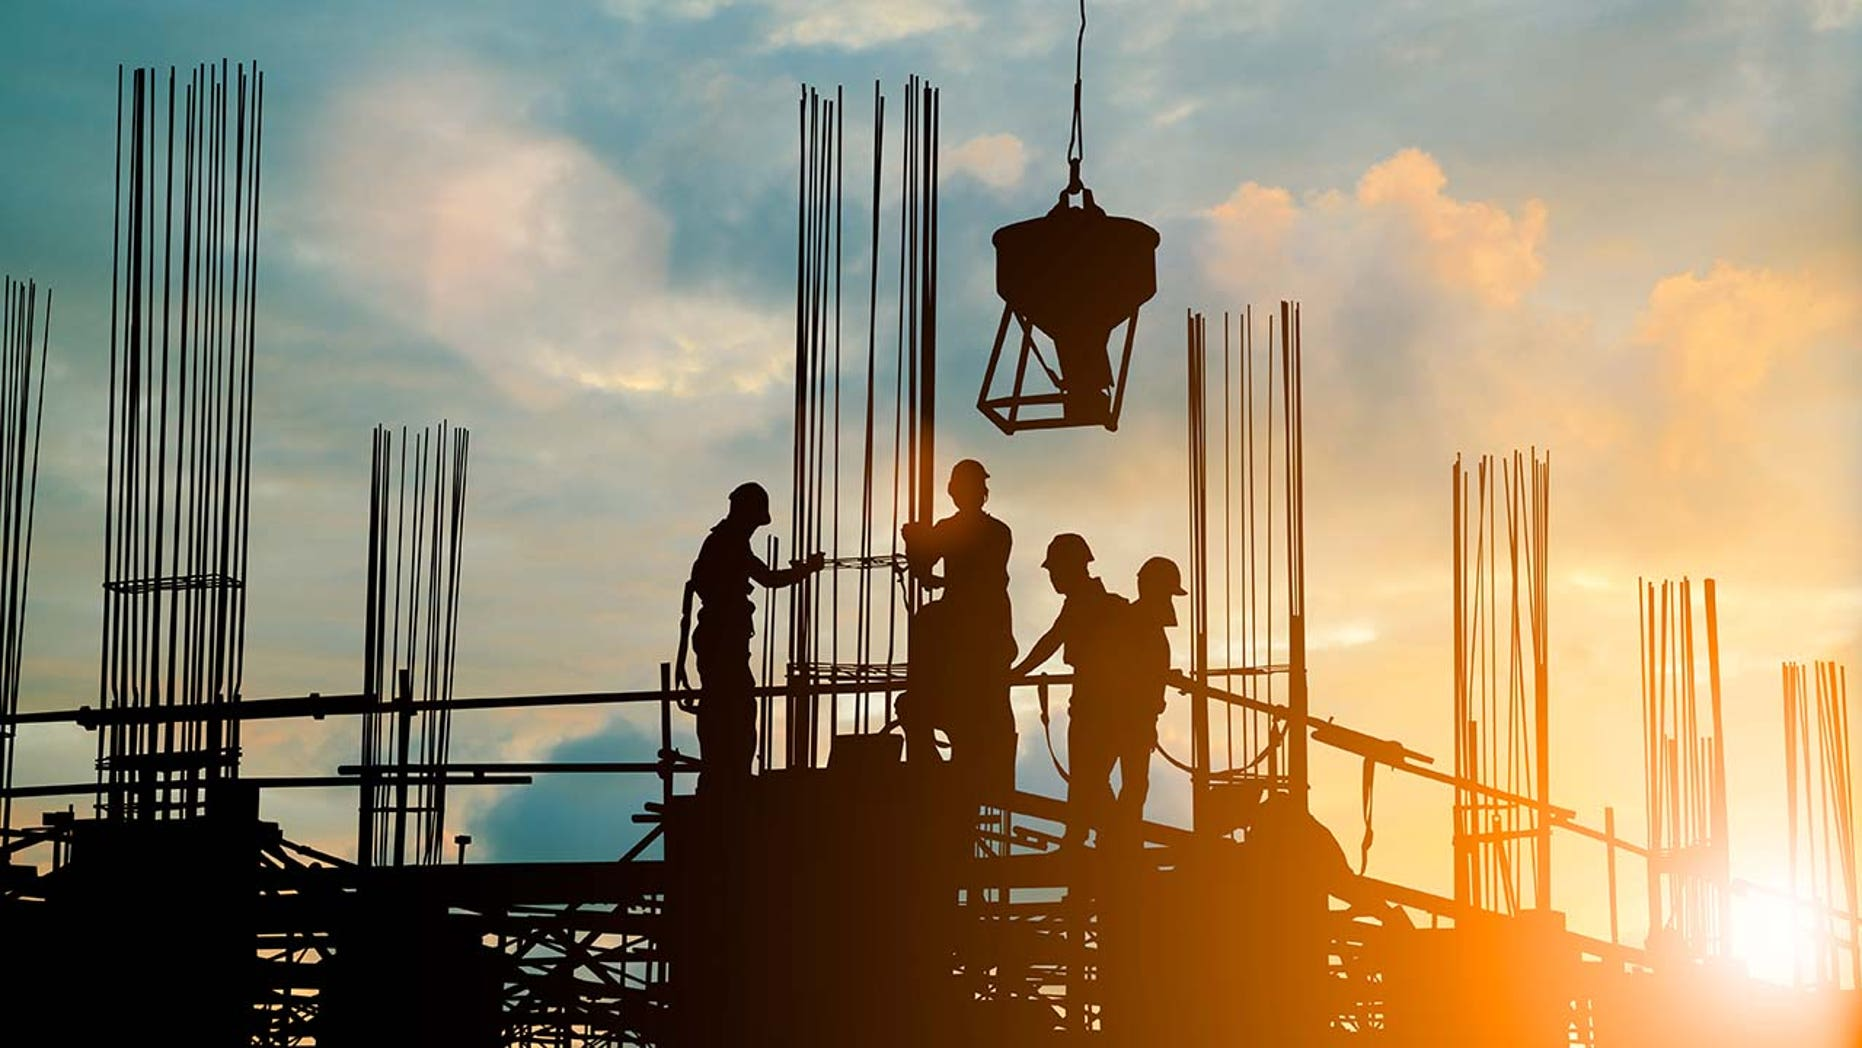 Males working in construction have the highest suicide rates in the country, according to a recent analysis by the Center for Disease Control and Prevention (CDC).